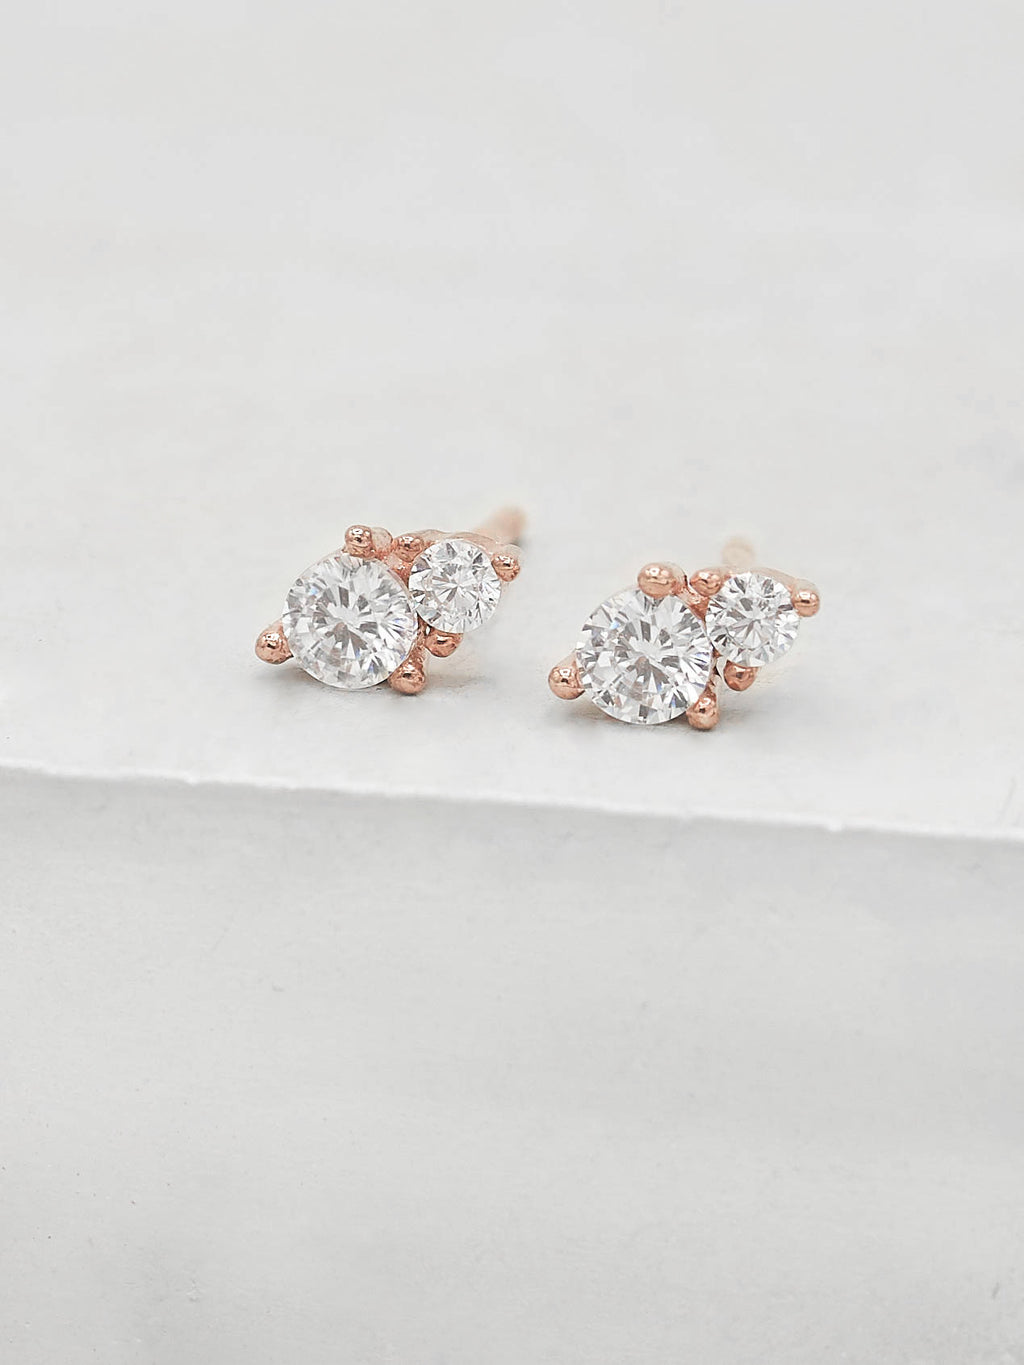 Rose Gold Plated 2 Stone Round Shape White CZ Stud Earrings by The Faint Hearted Jewelry